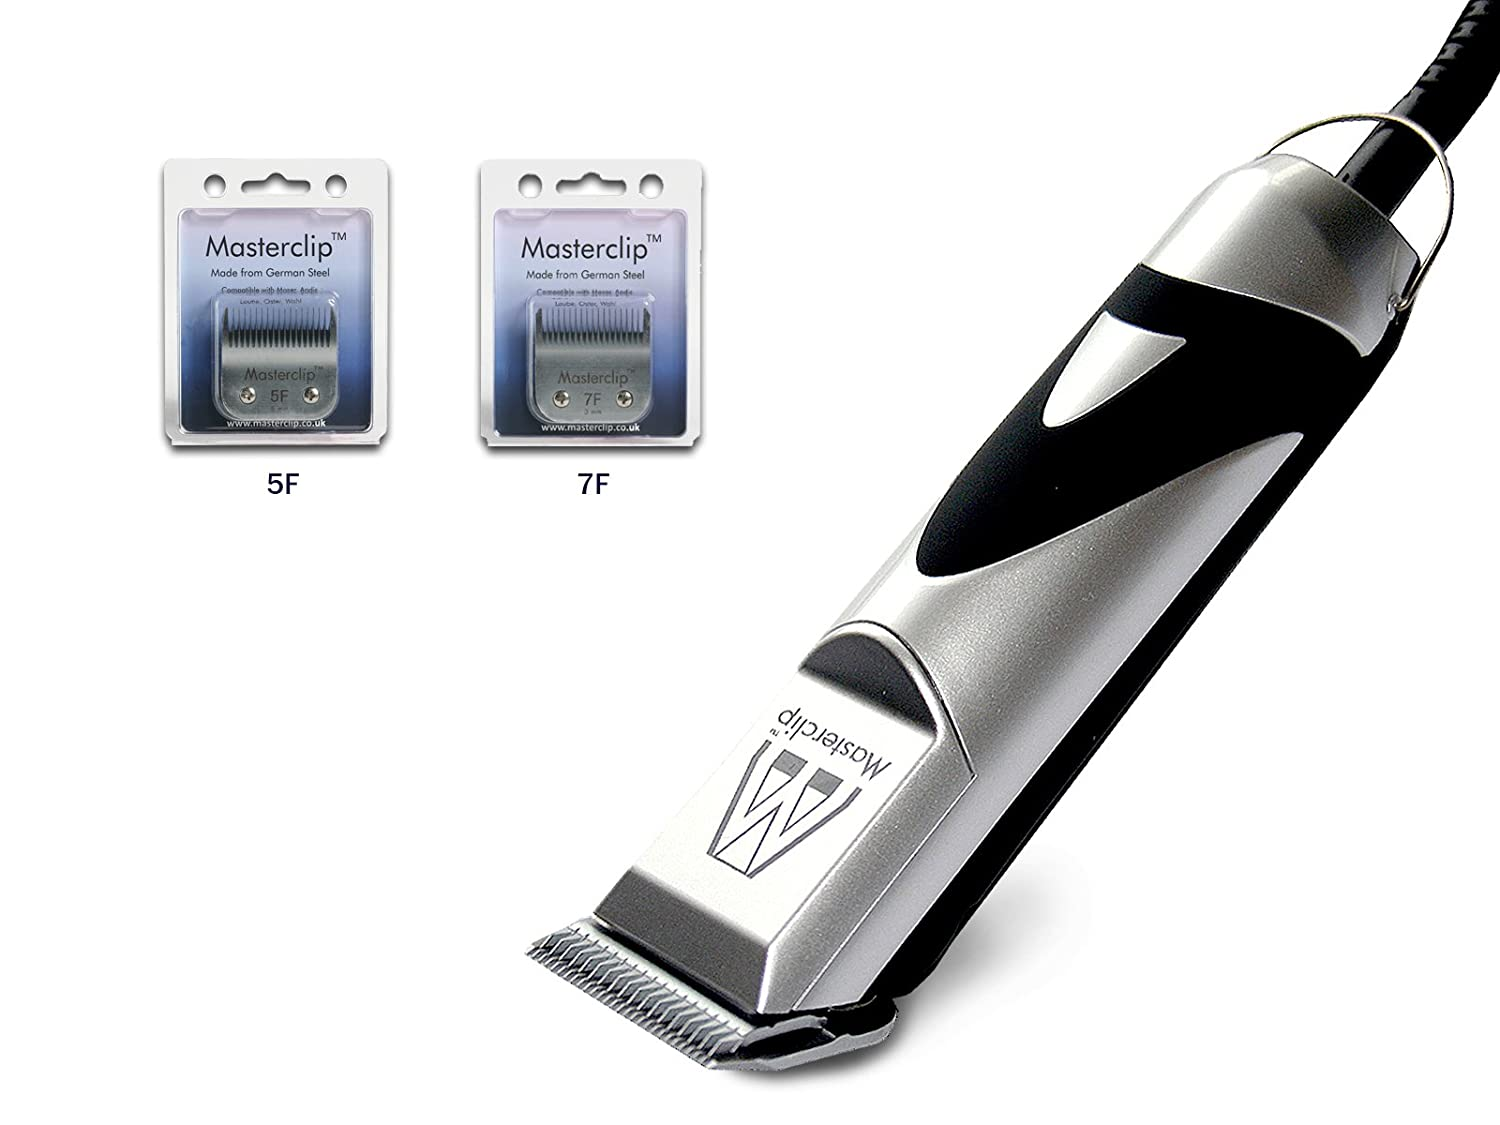 Masterclip Ultimate Dog Clippers Clipper Grooming Set